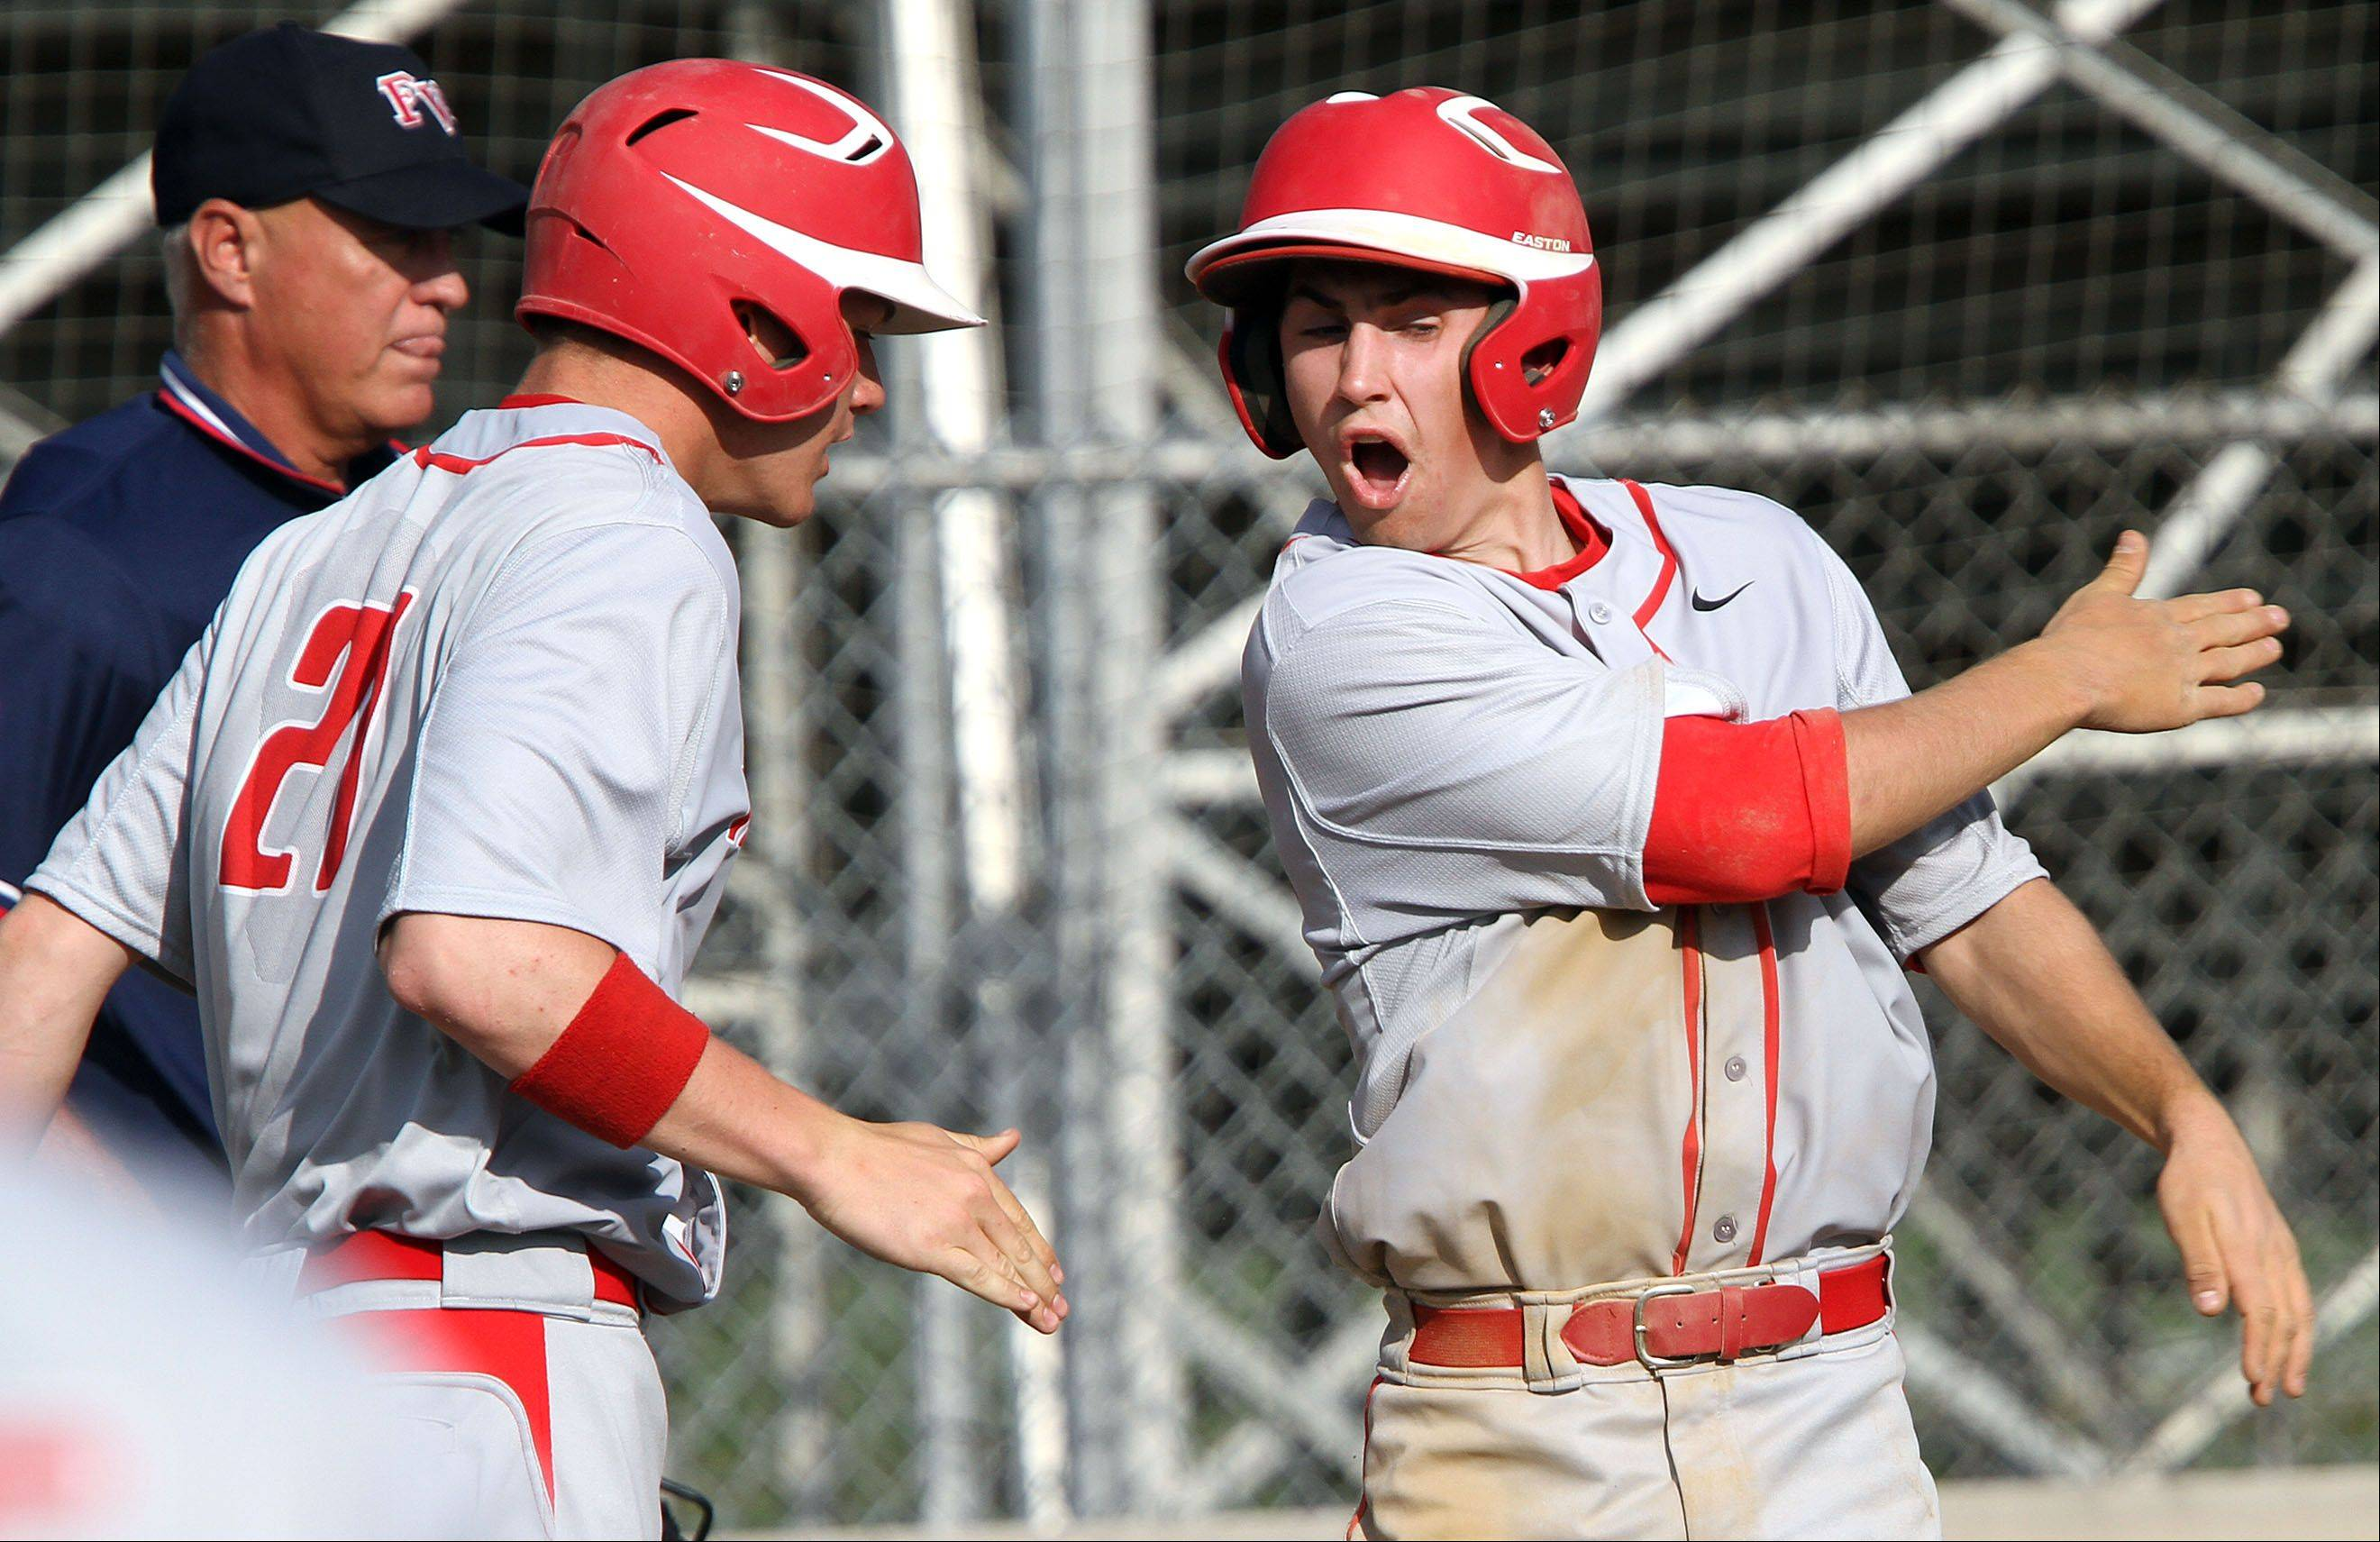 Mundelein's Zach Osisek, right, high fives teammate Luke Adams after Osisek scored Wednesday in Libertyville.